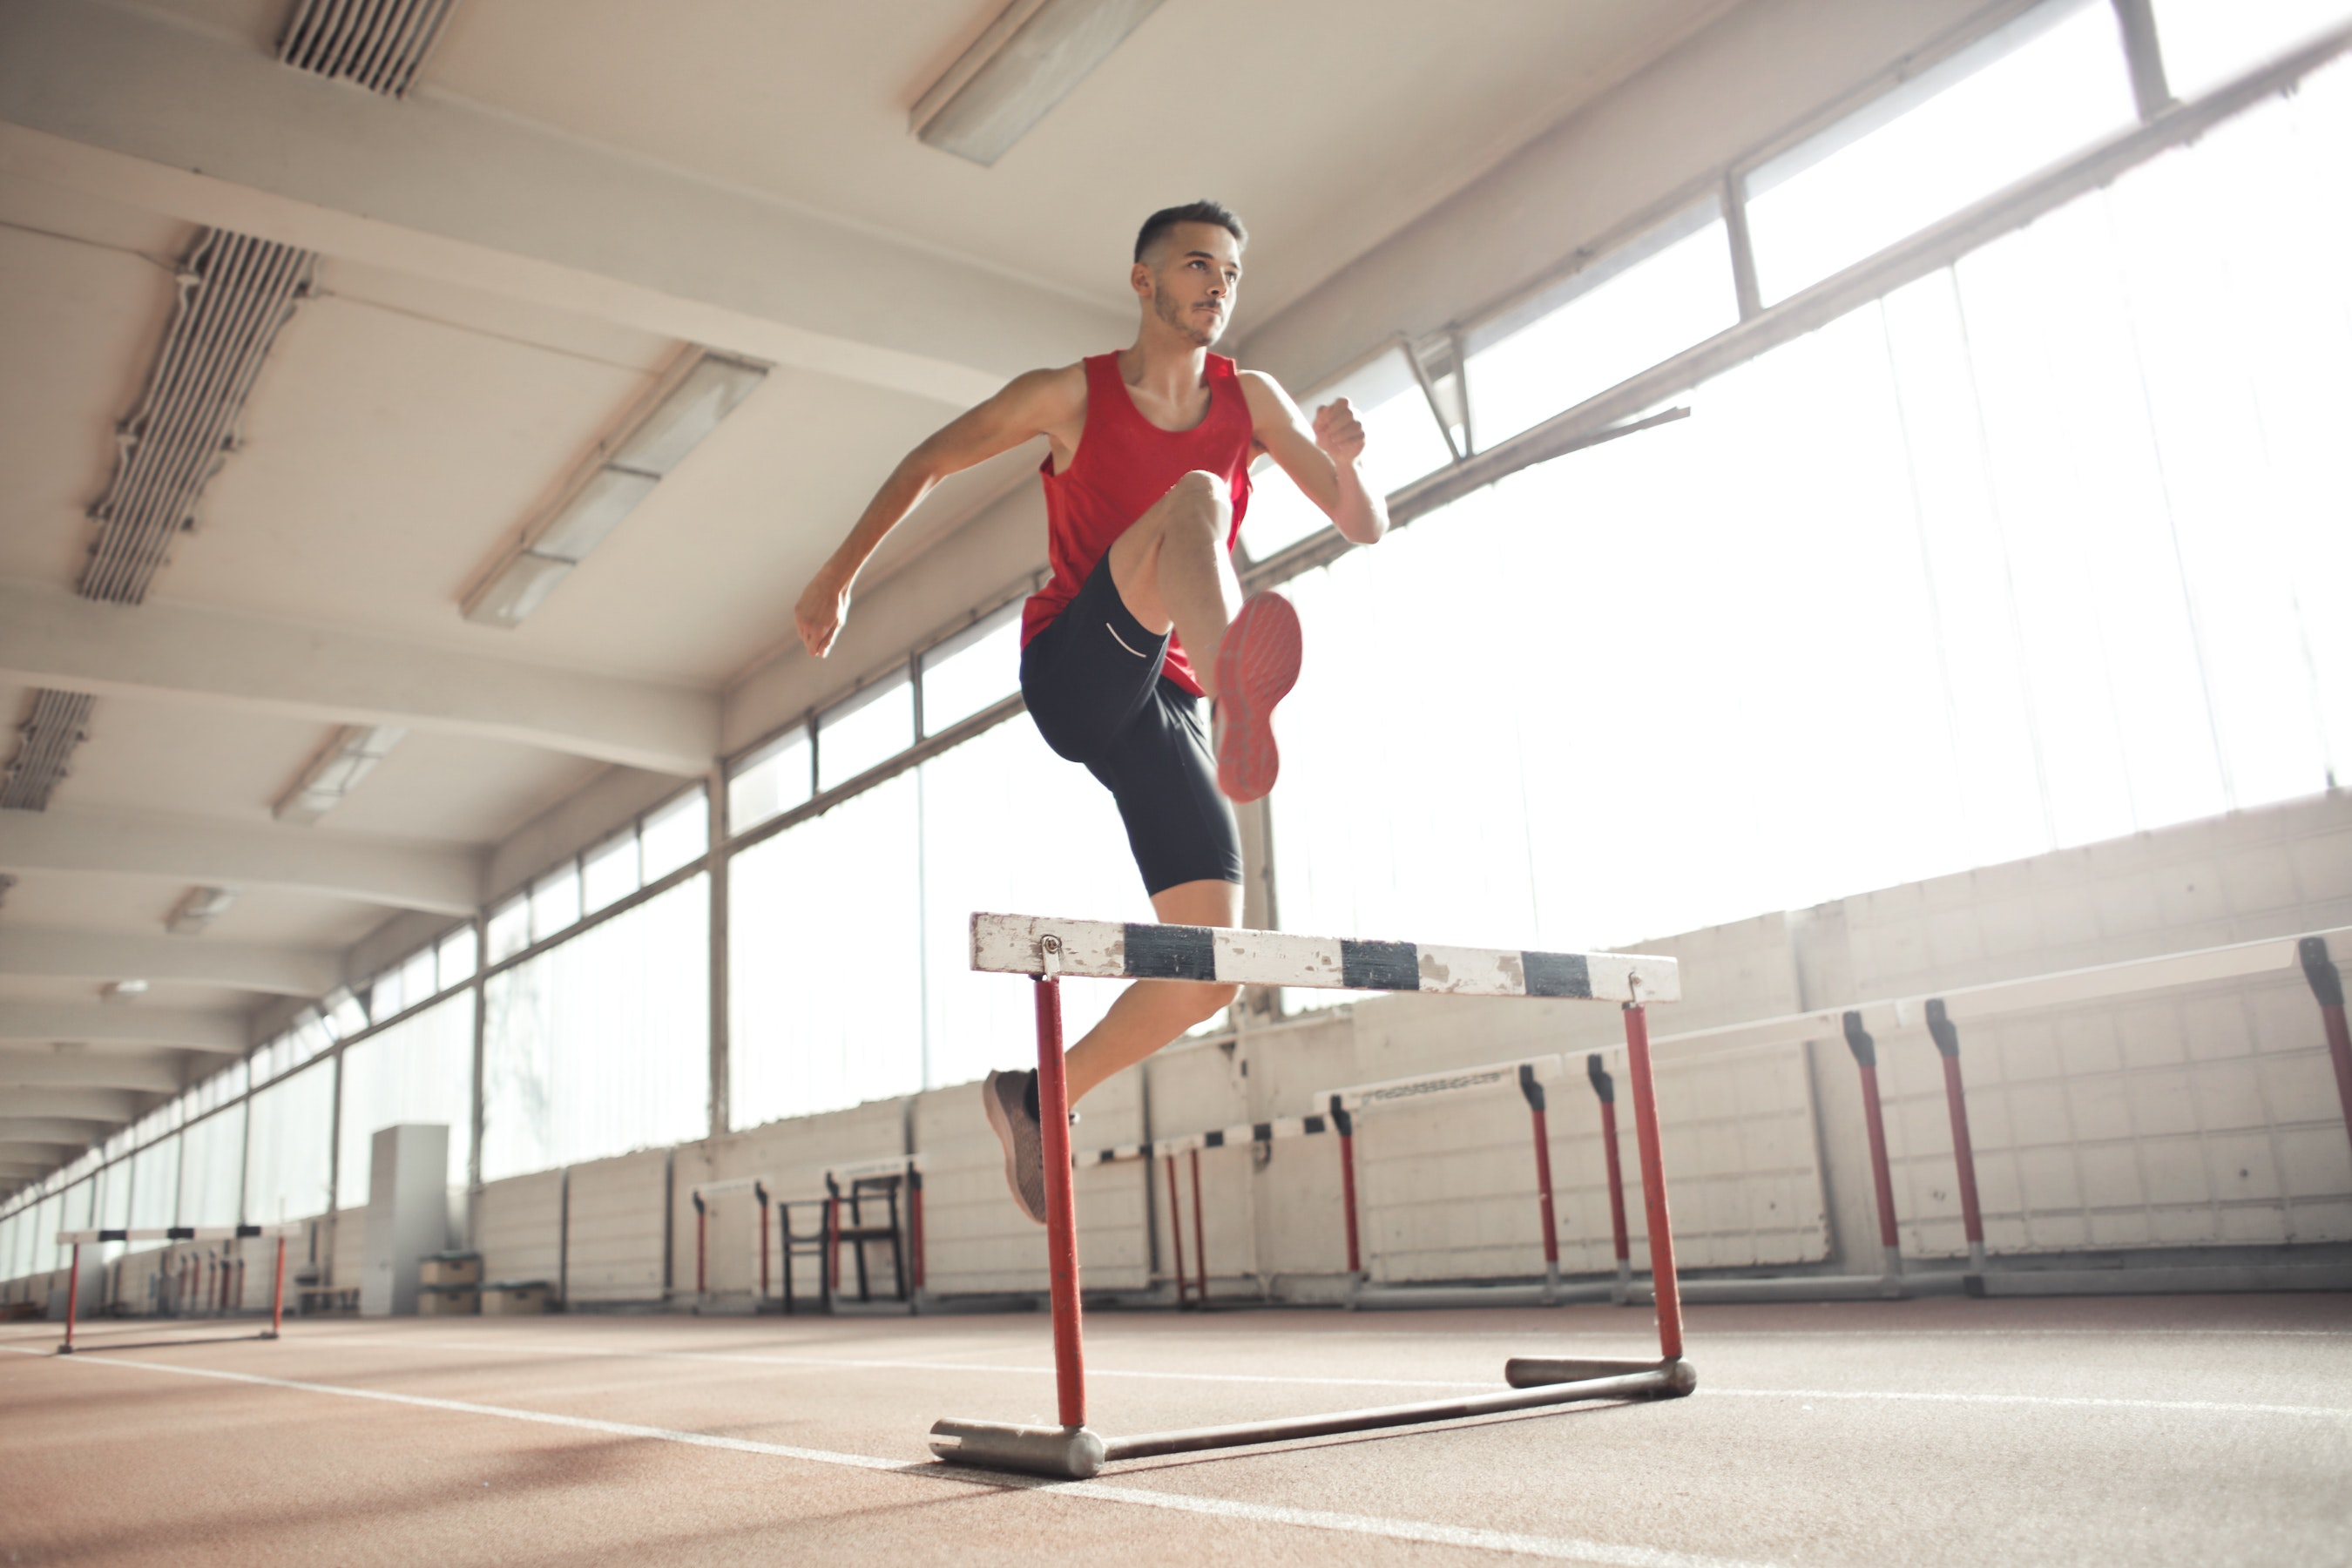 athlete jumping over a bar